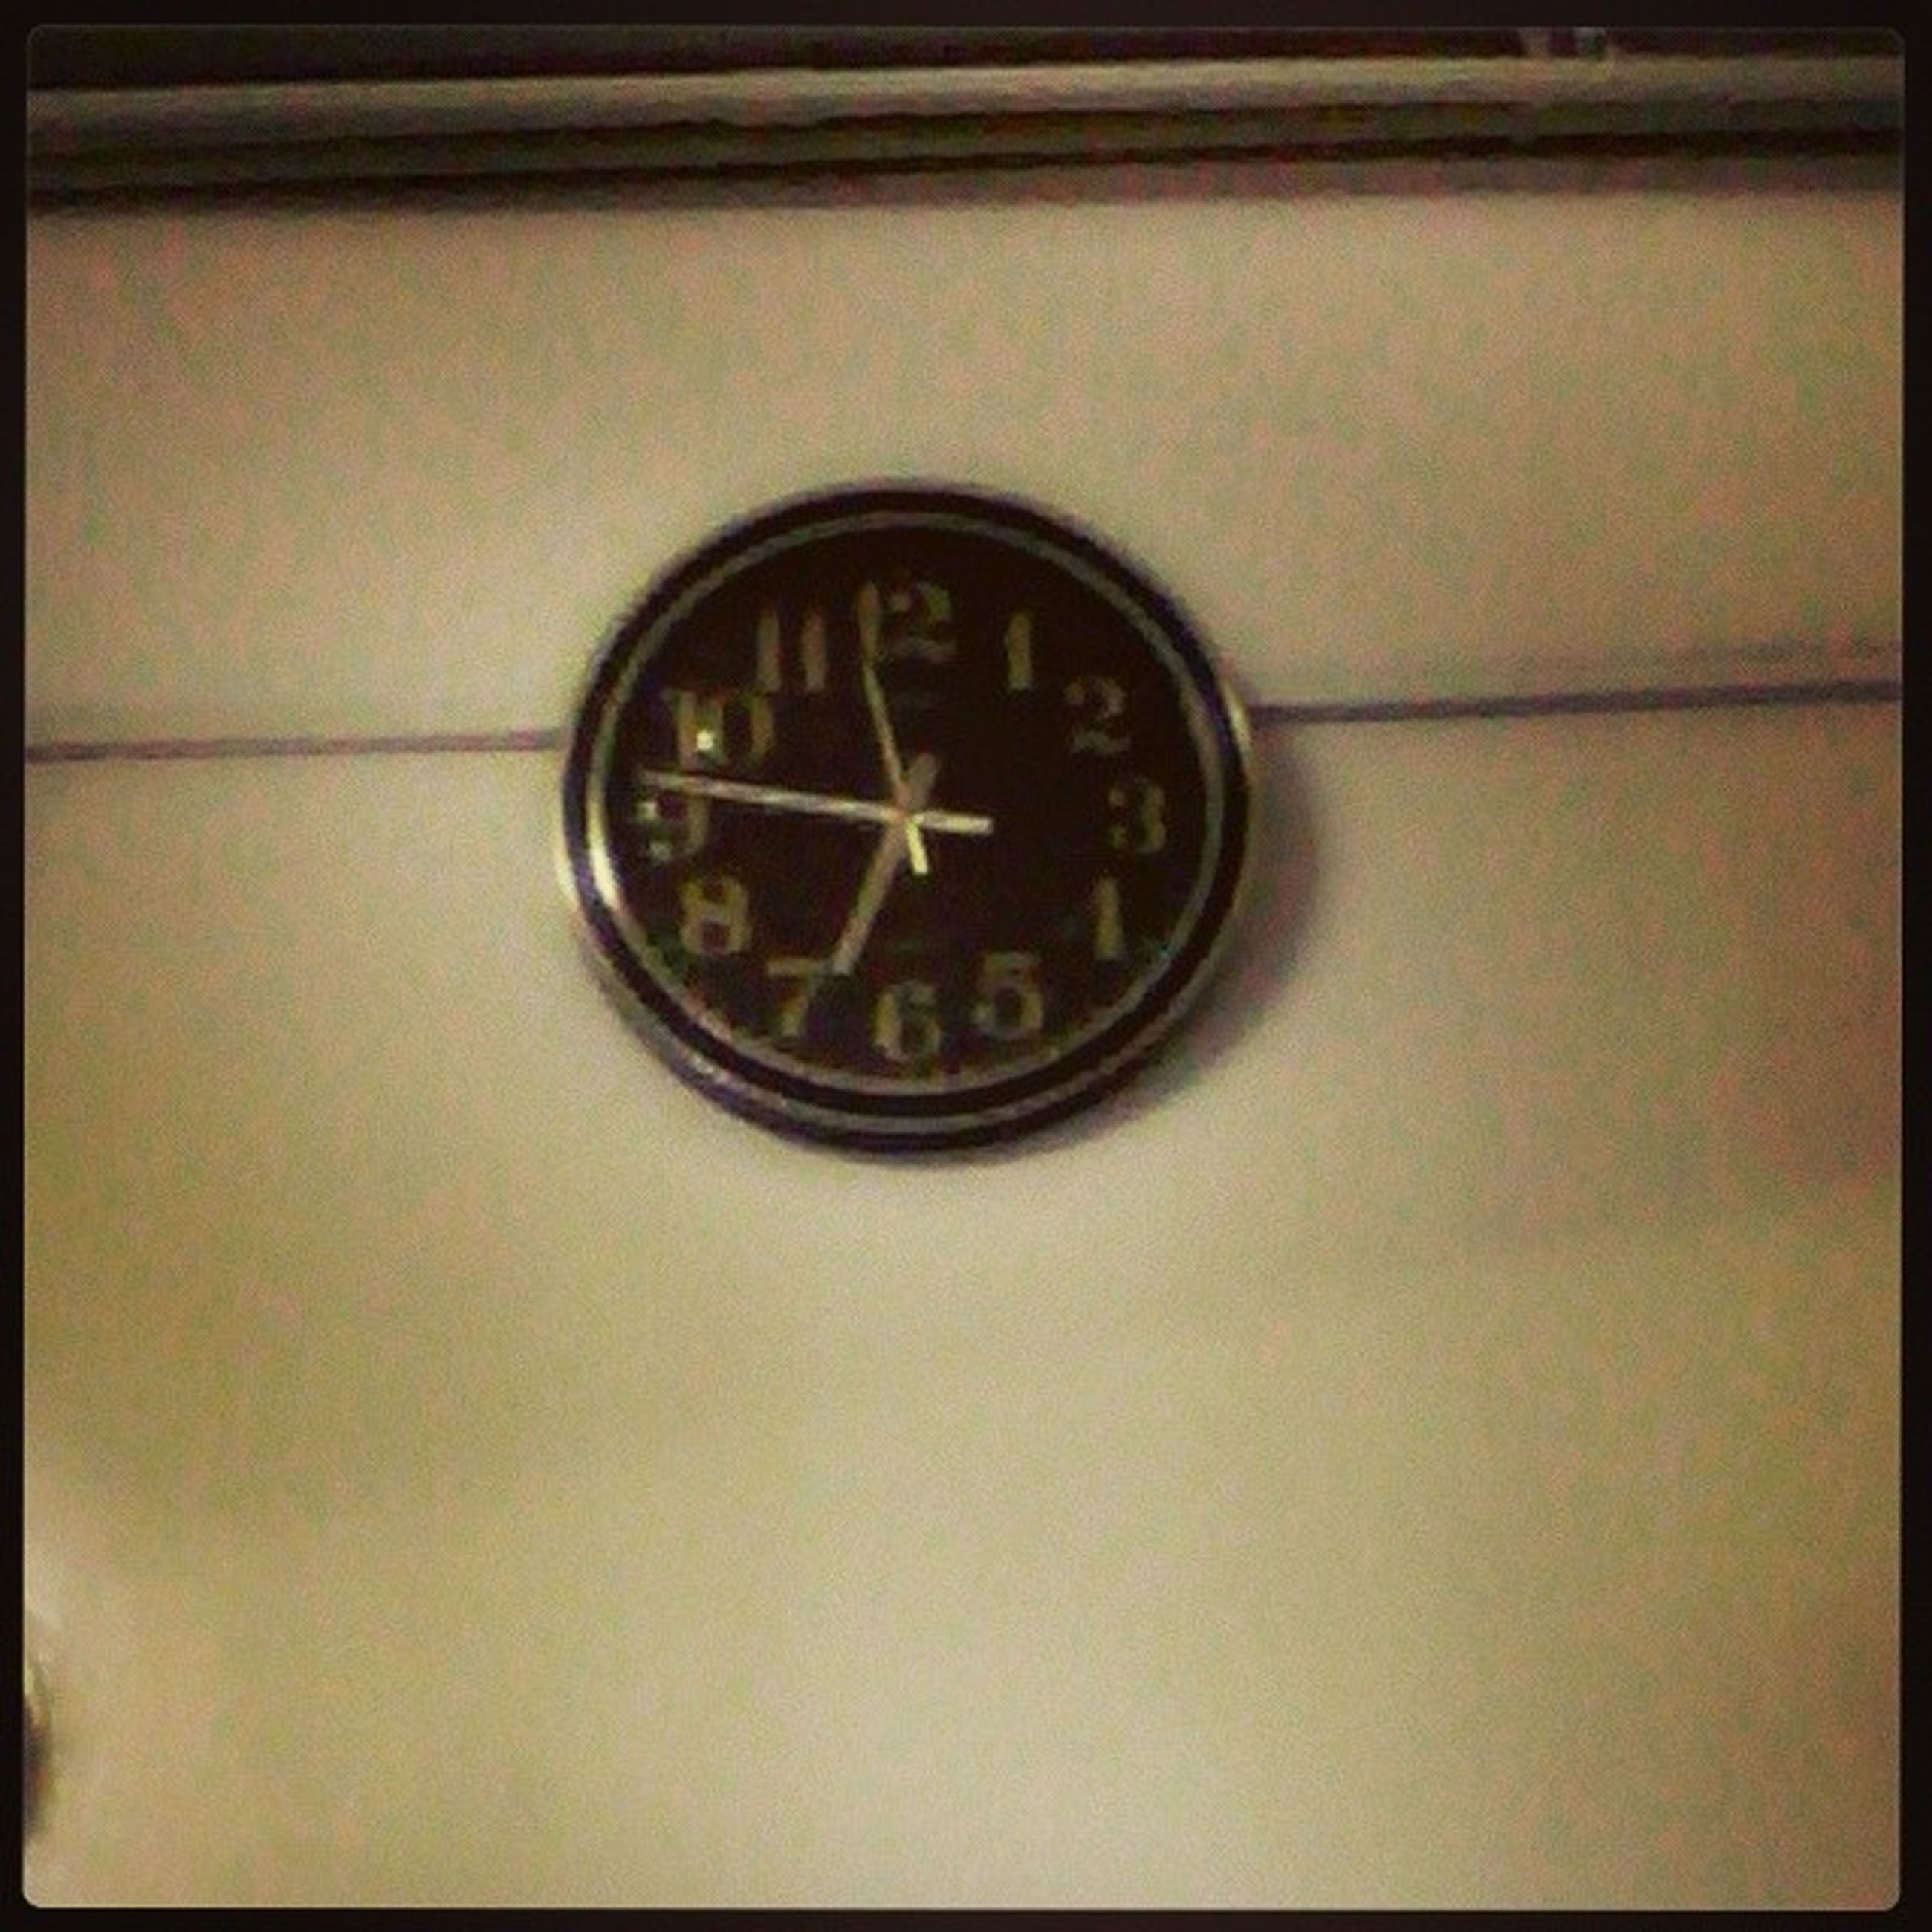 clock, transfer print, time, number, indoors, auto post production filter, circle, old-fashioned, close-up, clock face, retro styled, wall - building feature, communication, no people, metal, old, text, technology, accuracy, transportation